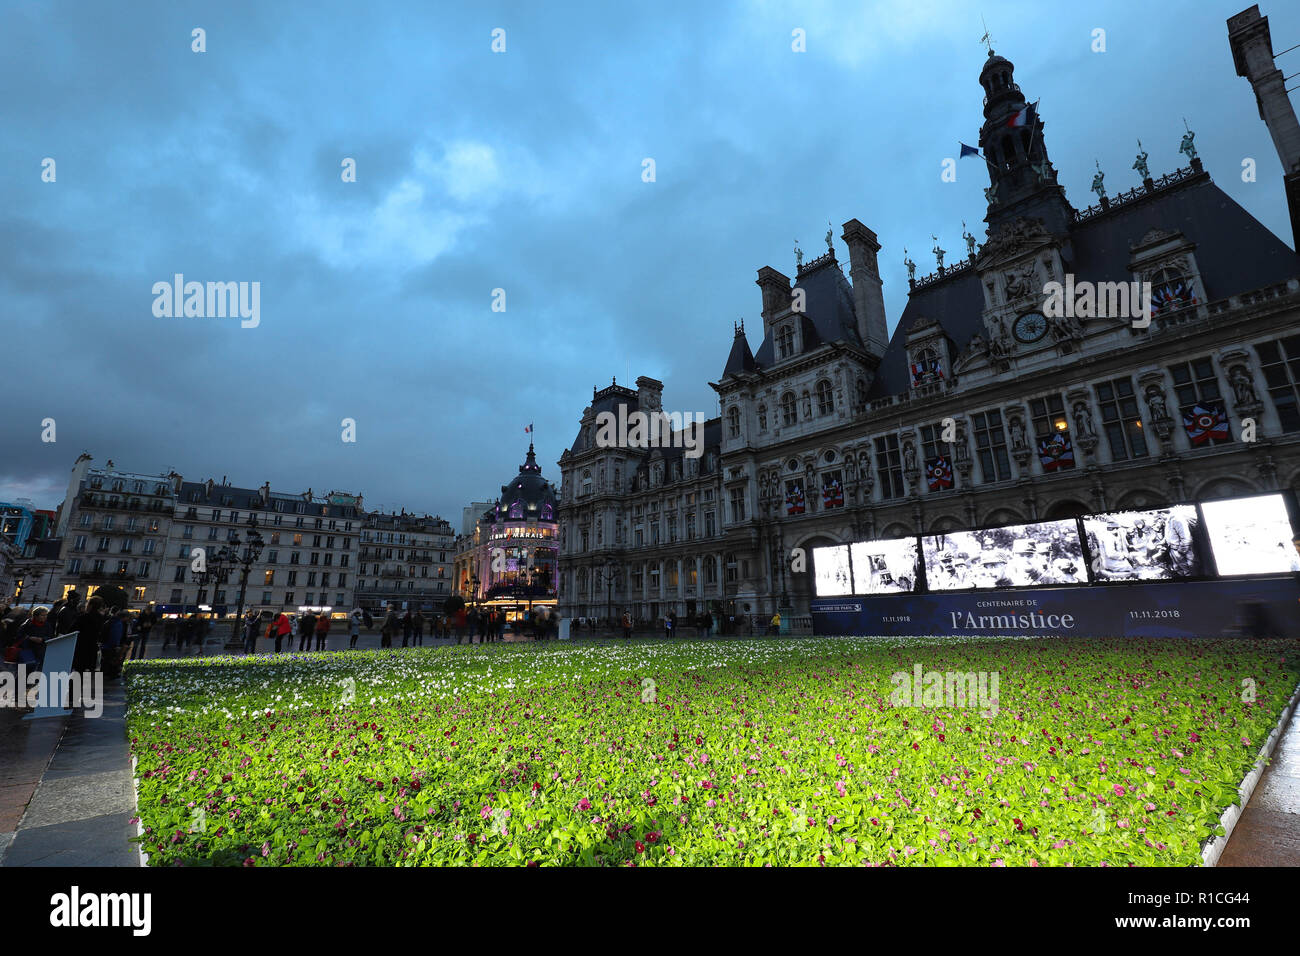 On the occasion of the Centenary of the Armistice of the First World War, Paris city hall sets 94,415 blue, white and red flowers in front of the city hall. Stock Photo